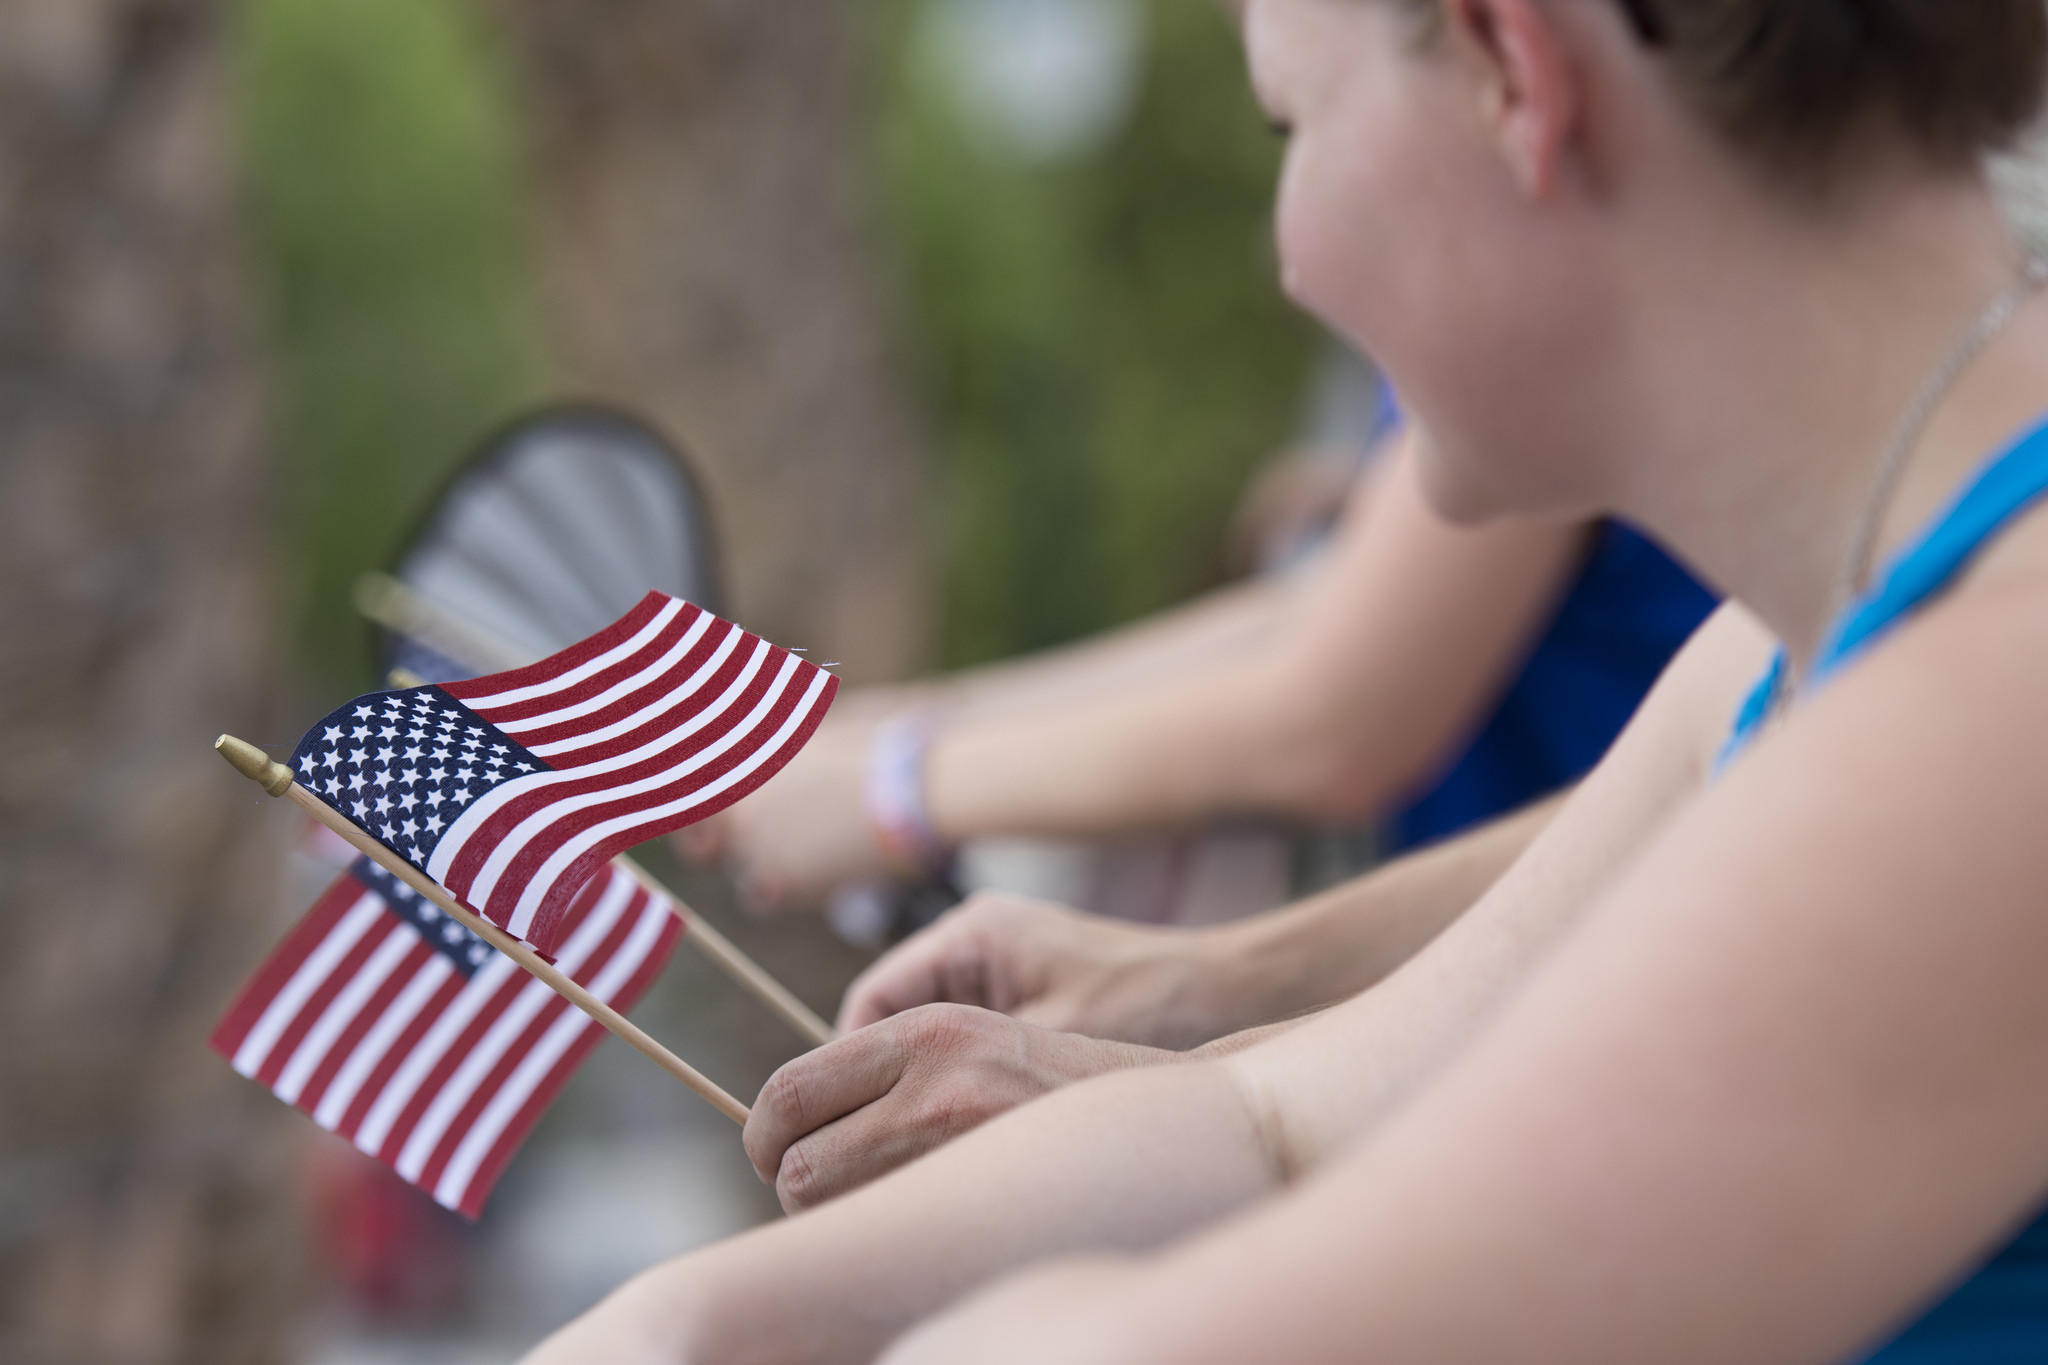 Flags were waved during the Fourth of July parade during the 67th Annual Boulder City Damboree Celebration in Boulder City, Saturday, July 4, 2015.(JASON OGULNIK/BOULDER CITY REVIEW)